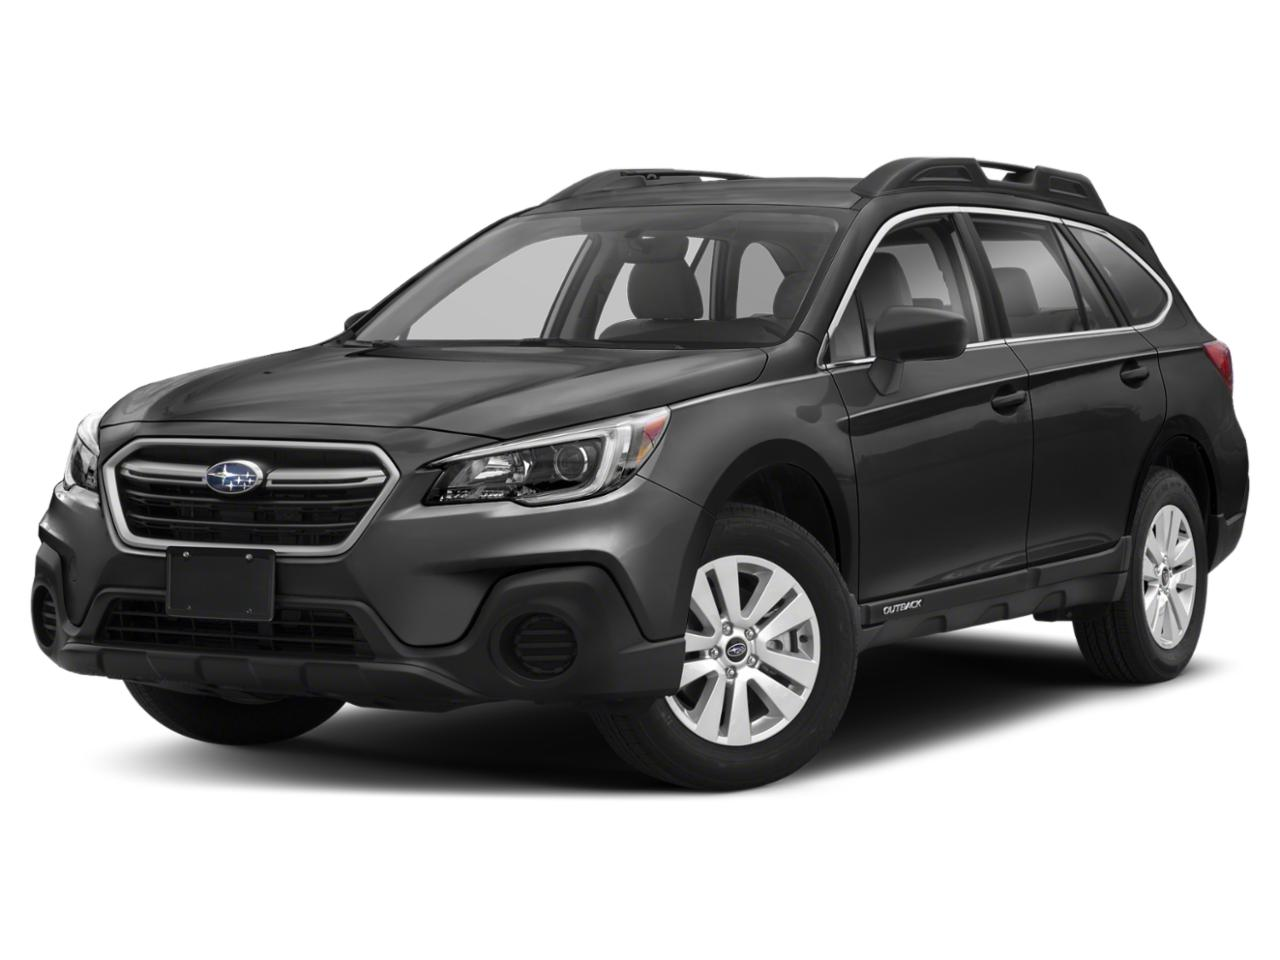 2018 Subaru Outback Vehicle Photo in CAPE MAY COURT HOUSE, NJ 08210-2432